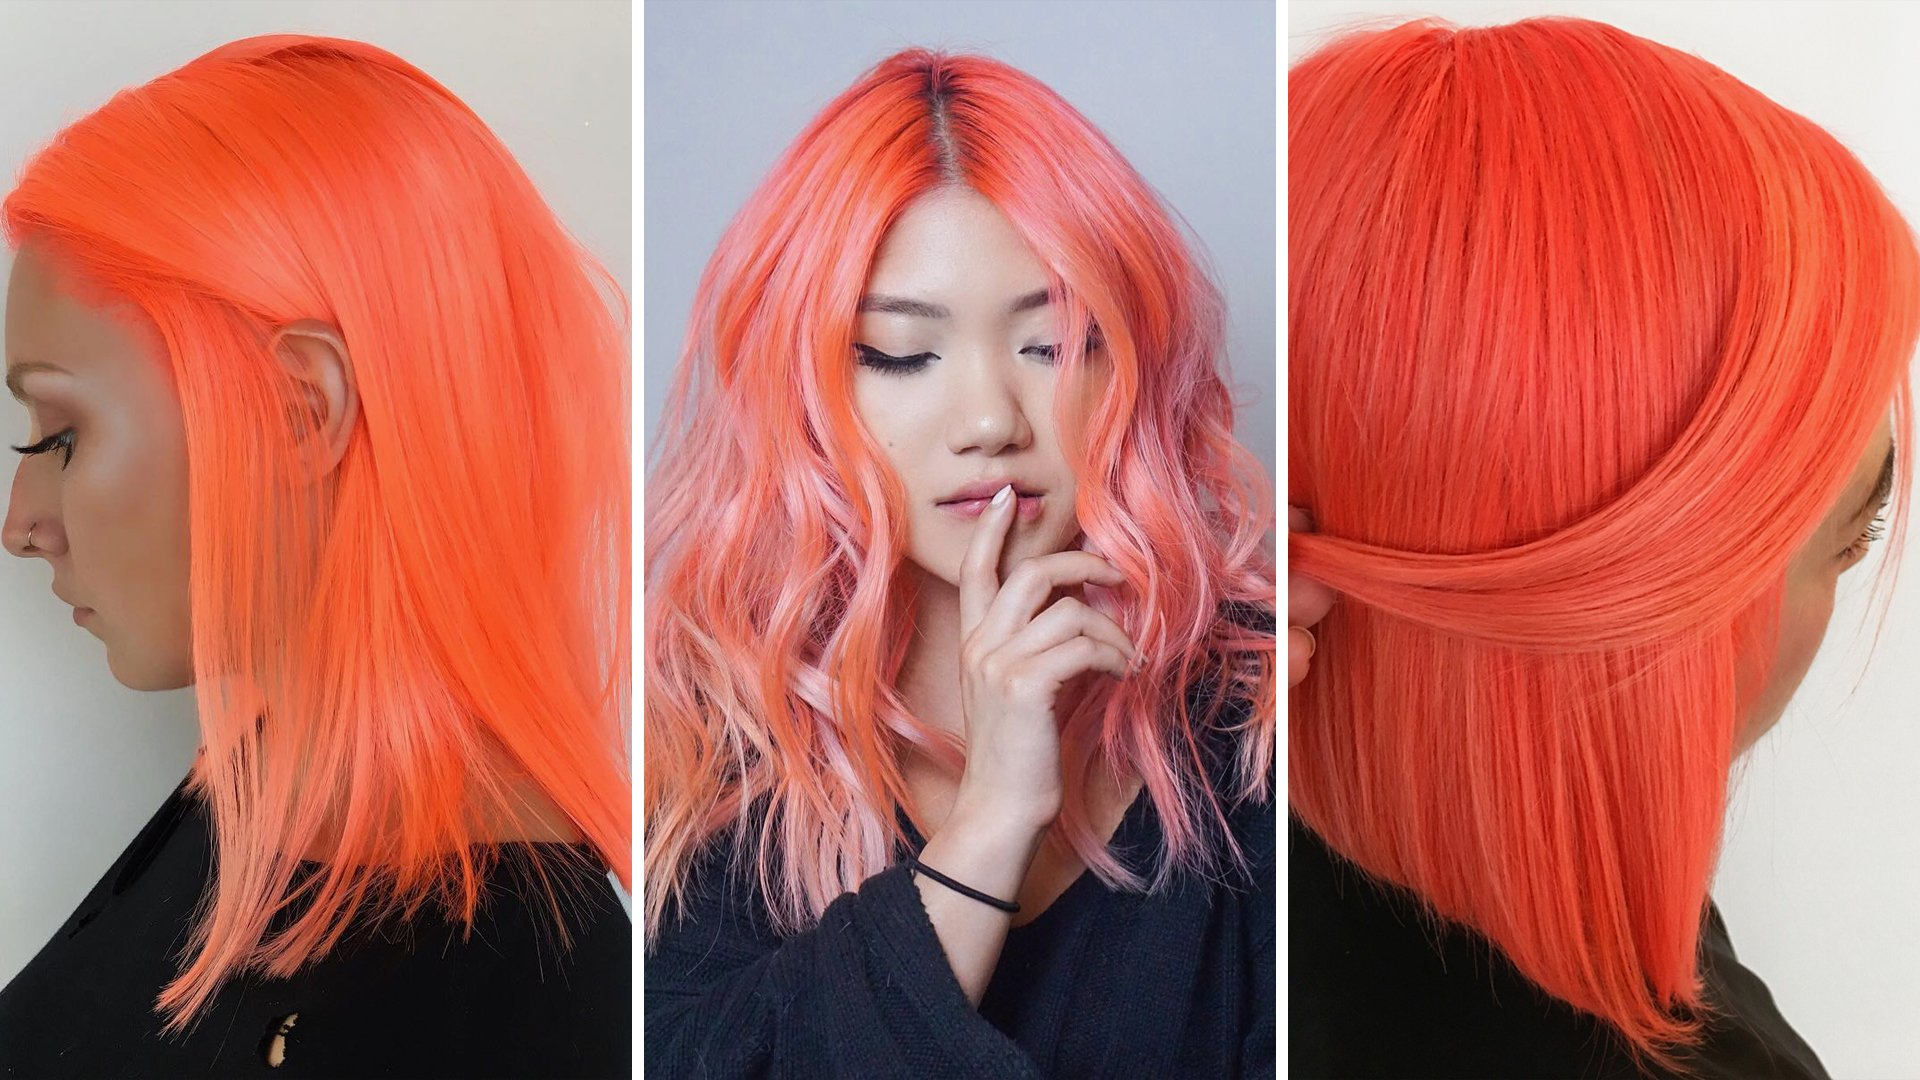 Neon Peach Hair is The Ultimate Summer Hair Trend Neon Peach Hair is The Ultimate Summer Hair Trend new photo